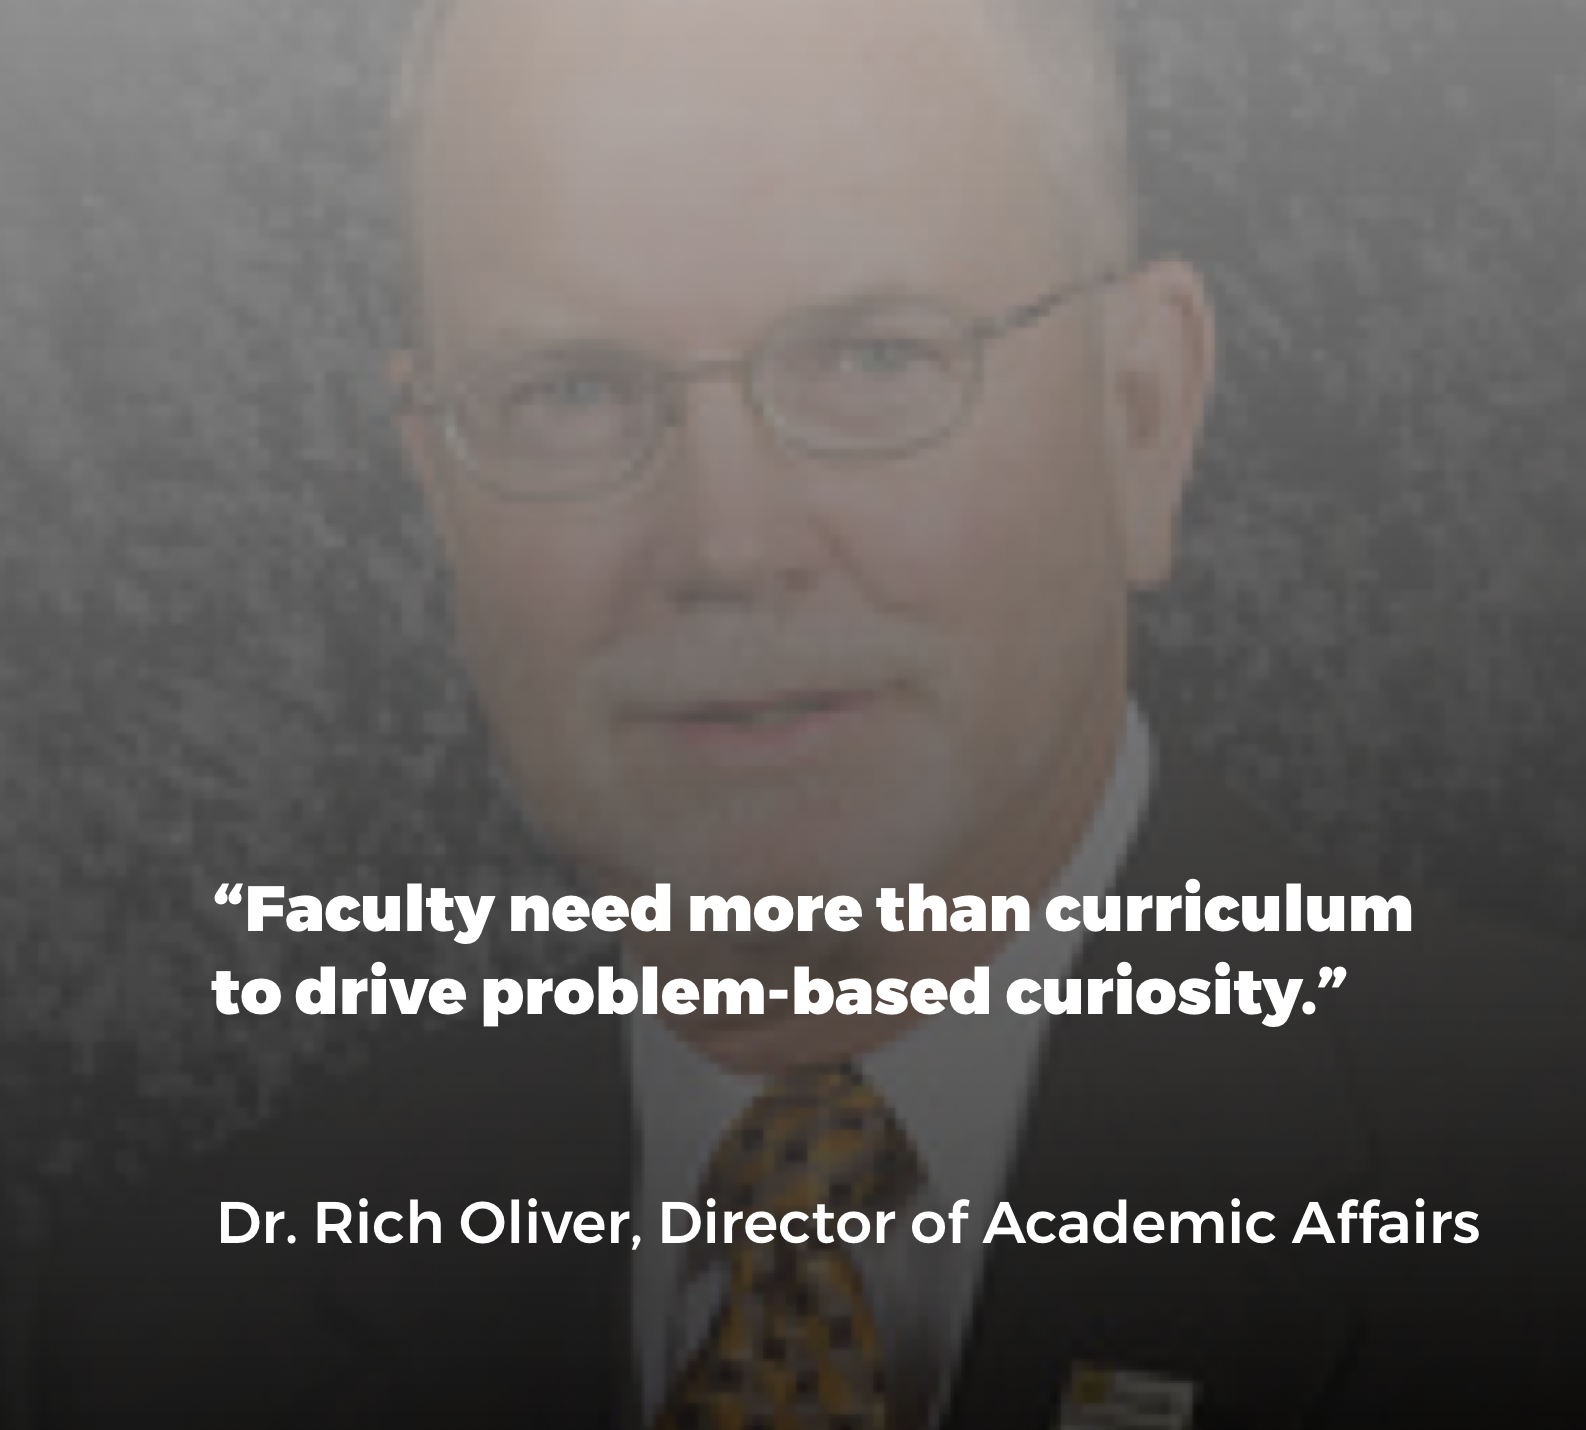 Read Rich's viewpoint on how higher-ed must knock down silos & change - HERE